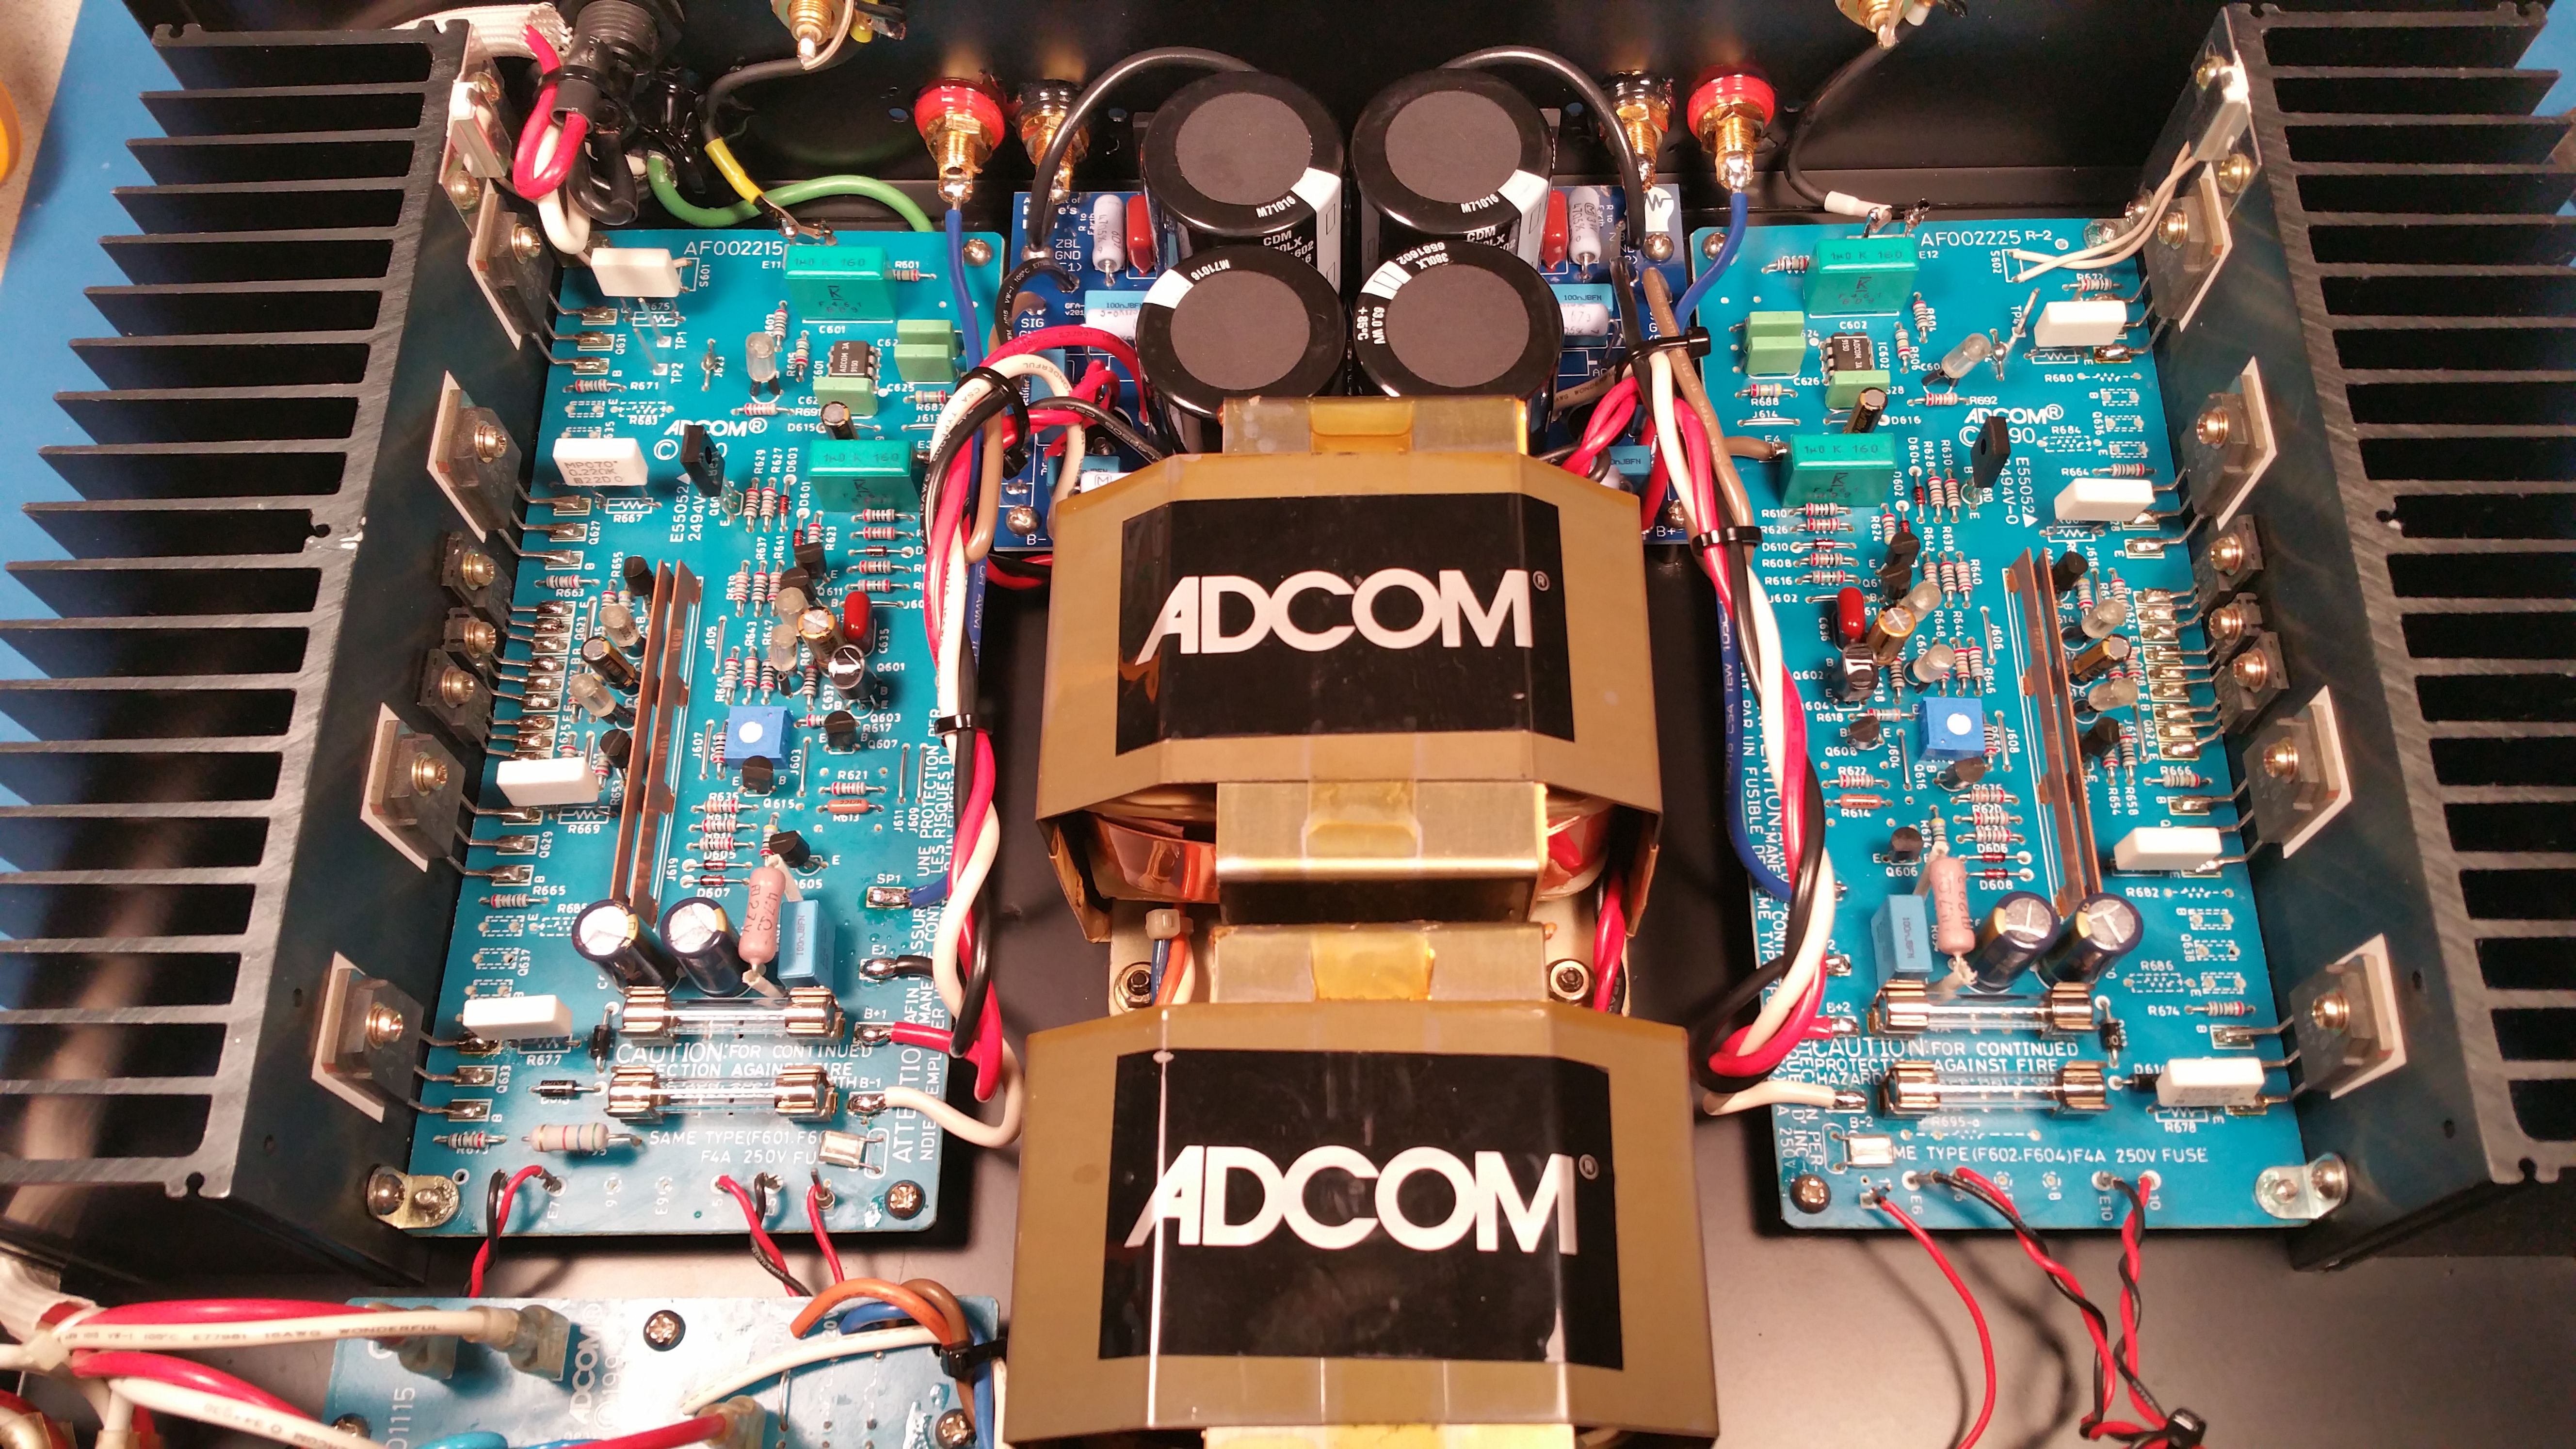 Classic Adcom Service Repair And Restoration Madison Wi Amplifier Wiring Kit With Capacitor Audiophile Upgrade Packages For The Gfa 535 545 555 Feature Newly Designed Power Supply Circuit Boards Many Improvements Over Stock